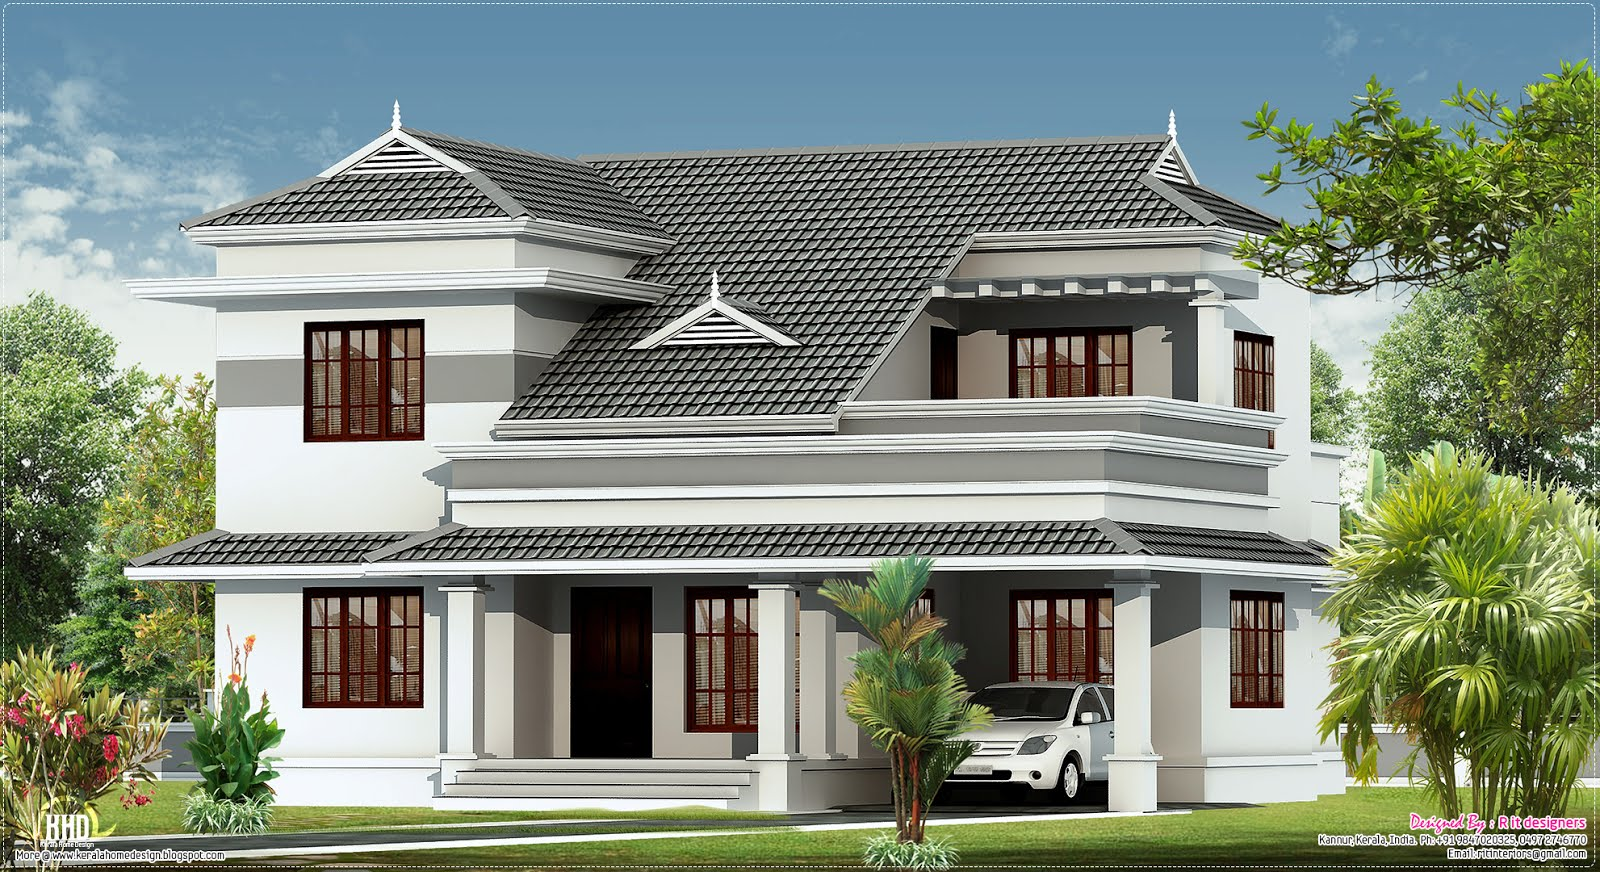 New villa design in 2250 kerala home design and for New house design photos